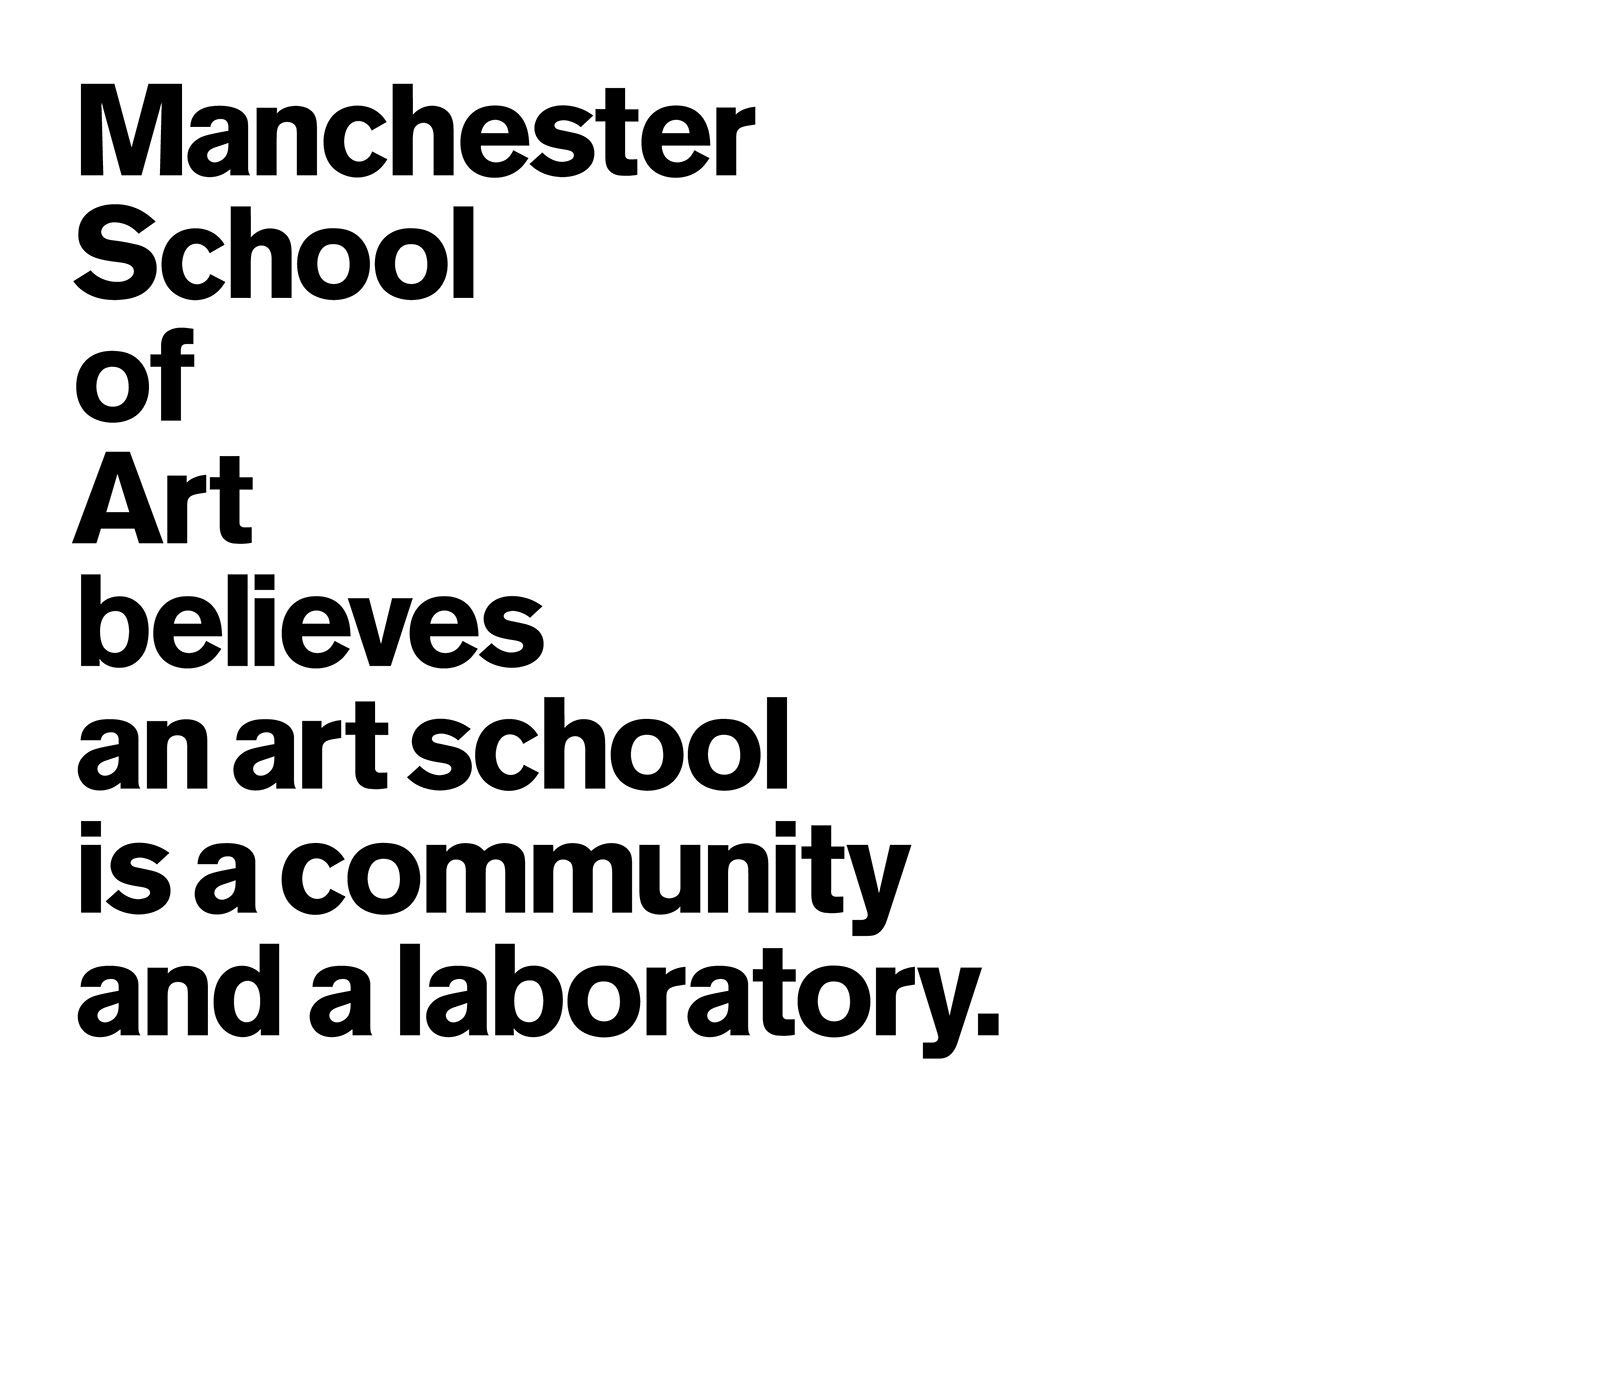 Manchester School of Art believes an art school is a community and a laboratory.